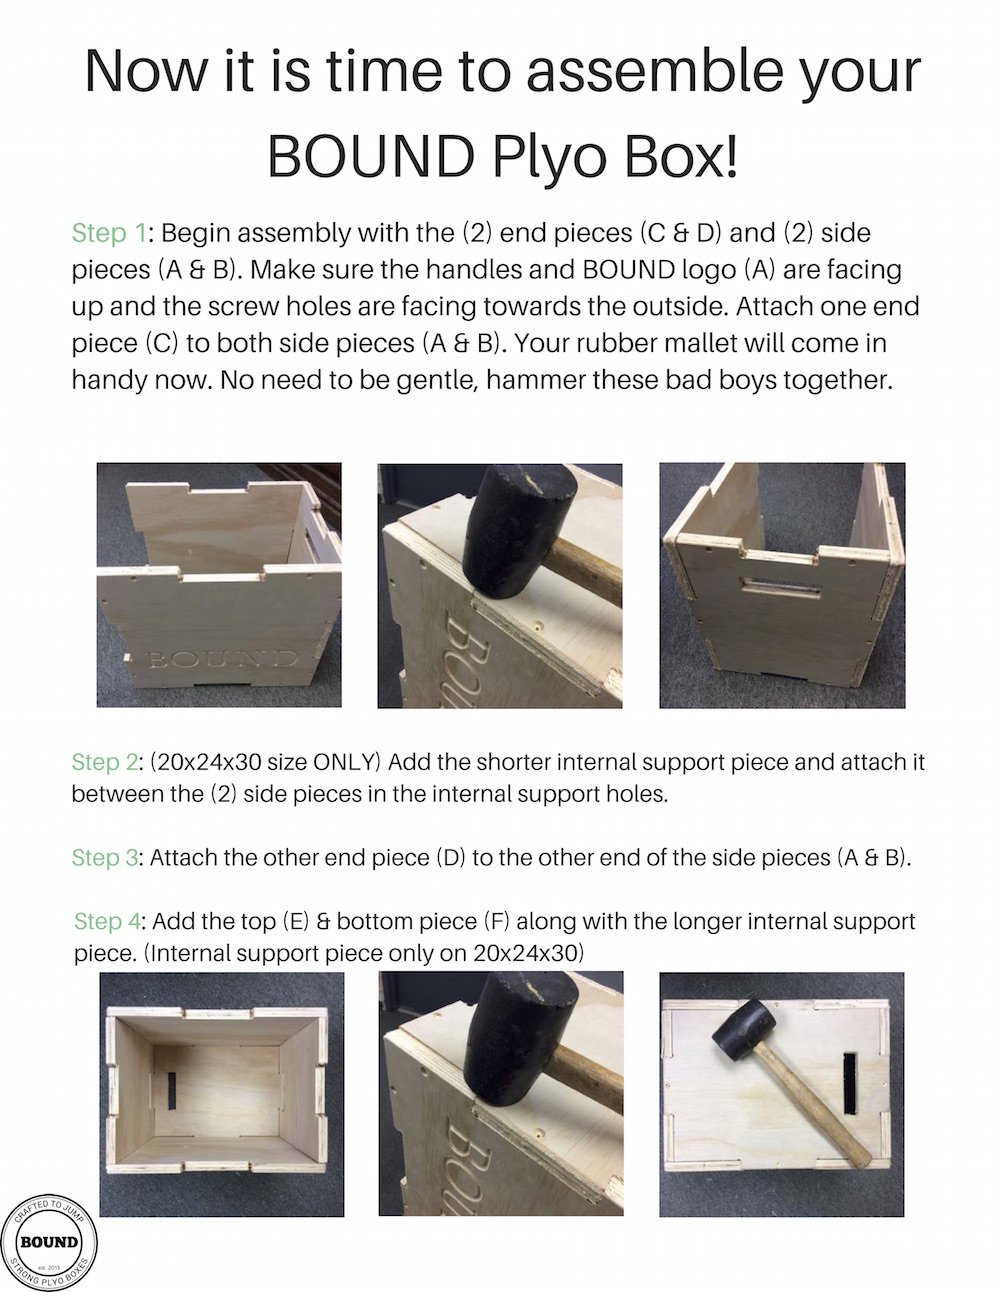 (20/24/30) Bound Plyo Box 3-in-1 Wood Puzzle Plyometric Box - CrossFit Training, MMA, or Plyometric Agility - Jump Box, Plyobox, Plyo Box, Plyometric Box, Plyometrics Box by BOUND Plyo Box (Image #6)